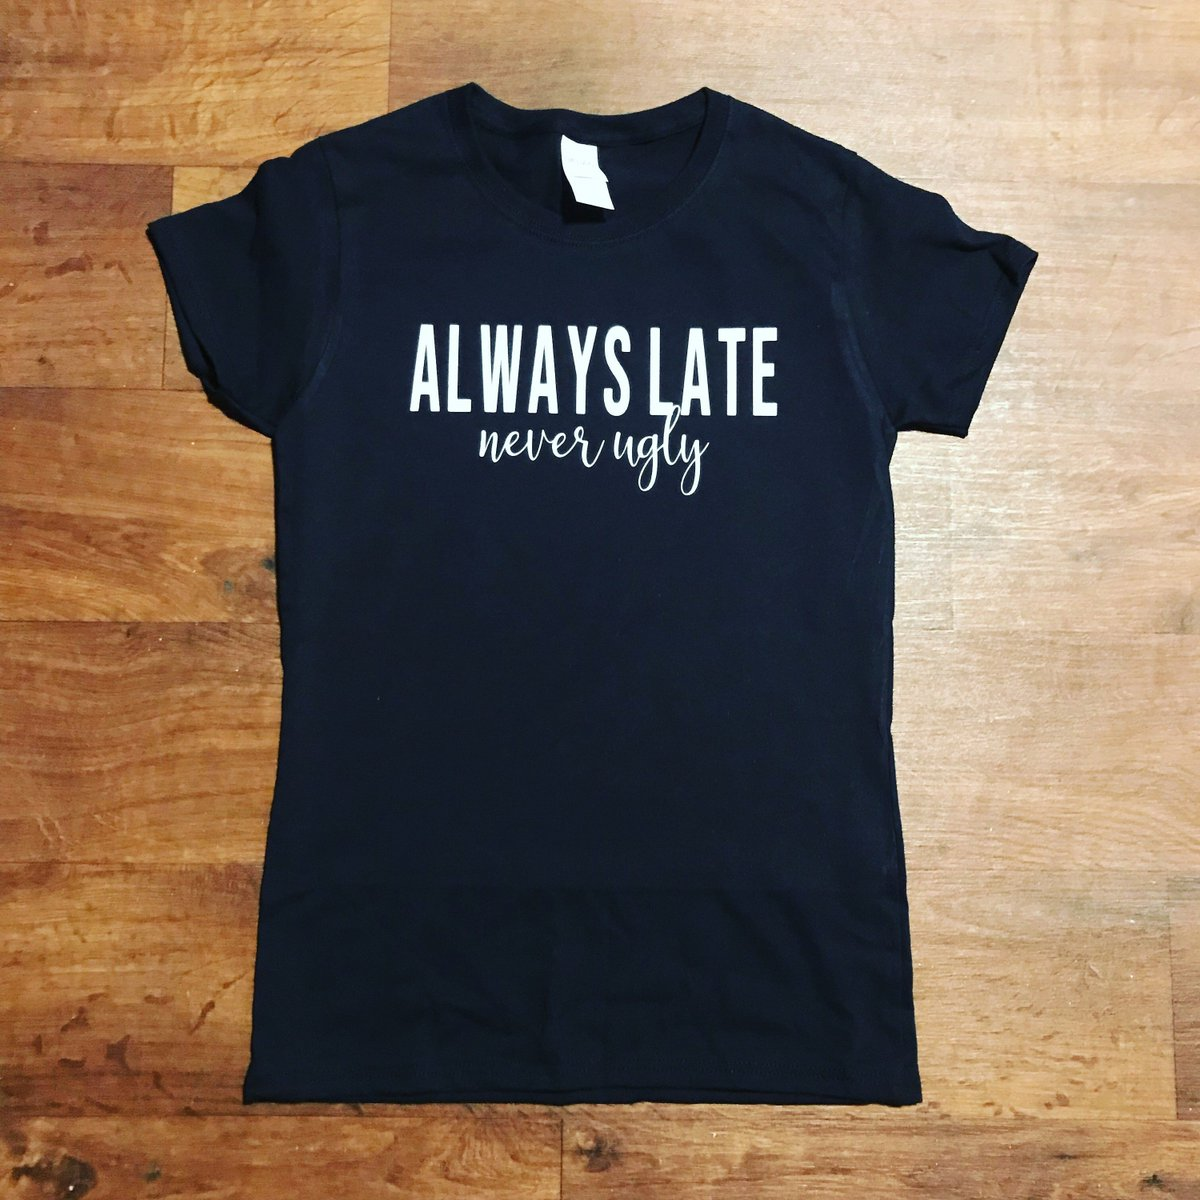 Creation Station On Twitter Excited To Share The Latest Addition To My Etsy Shop Always Late Never Ugly Https T Co Ytfyzjgpyt Clothing Women